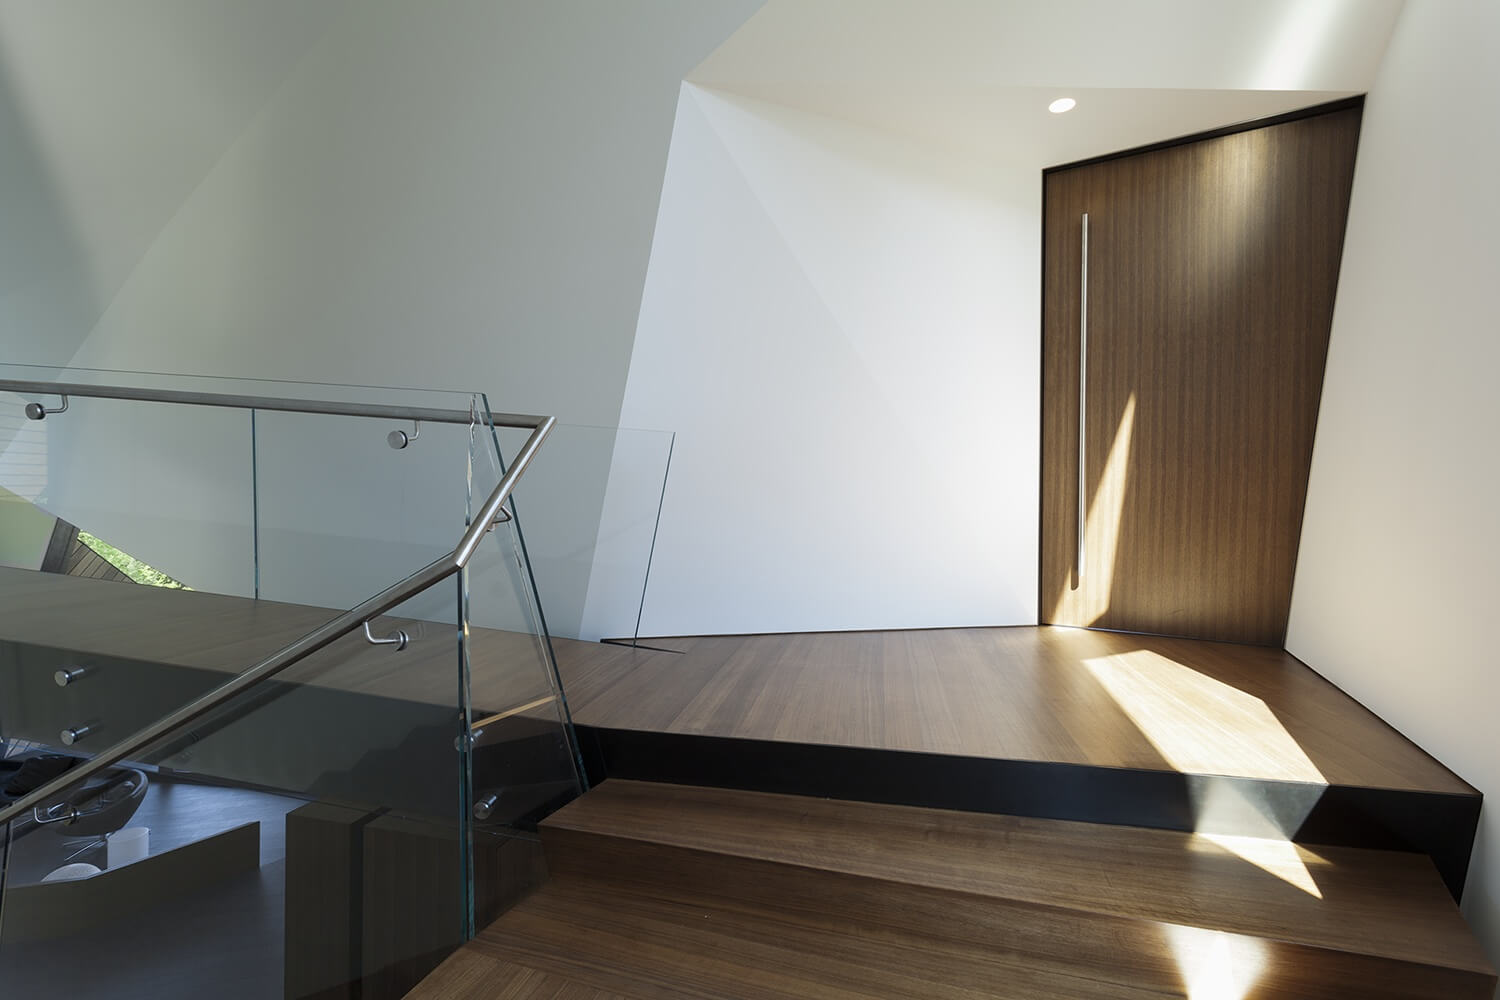 Even the doors in this home are full of angles, as displayed by this warped door. The handle is an immensely long chrome fixture for a modern and minimalist vibe.